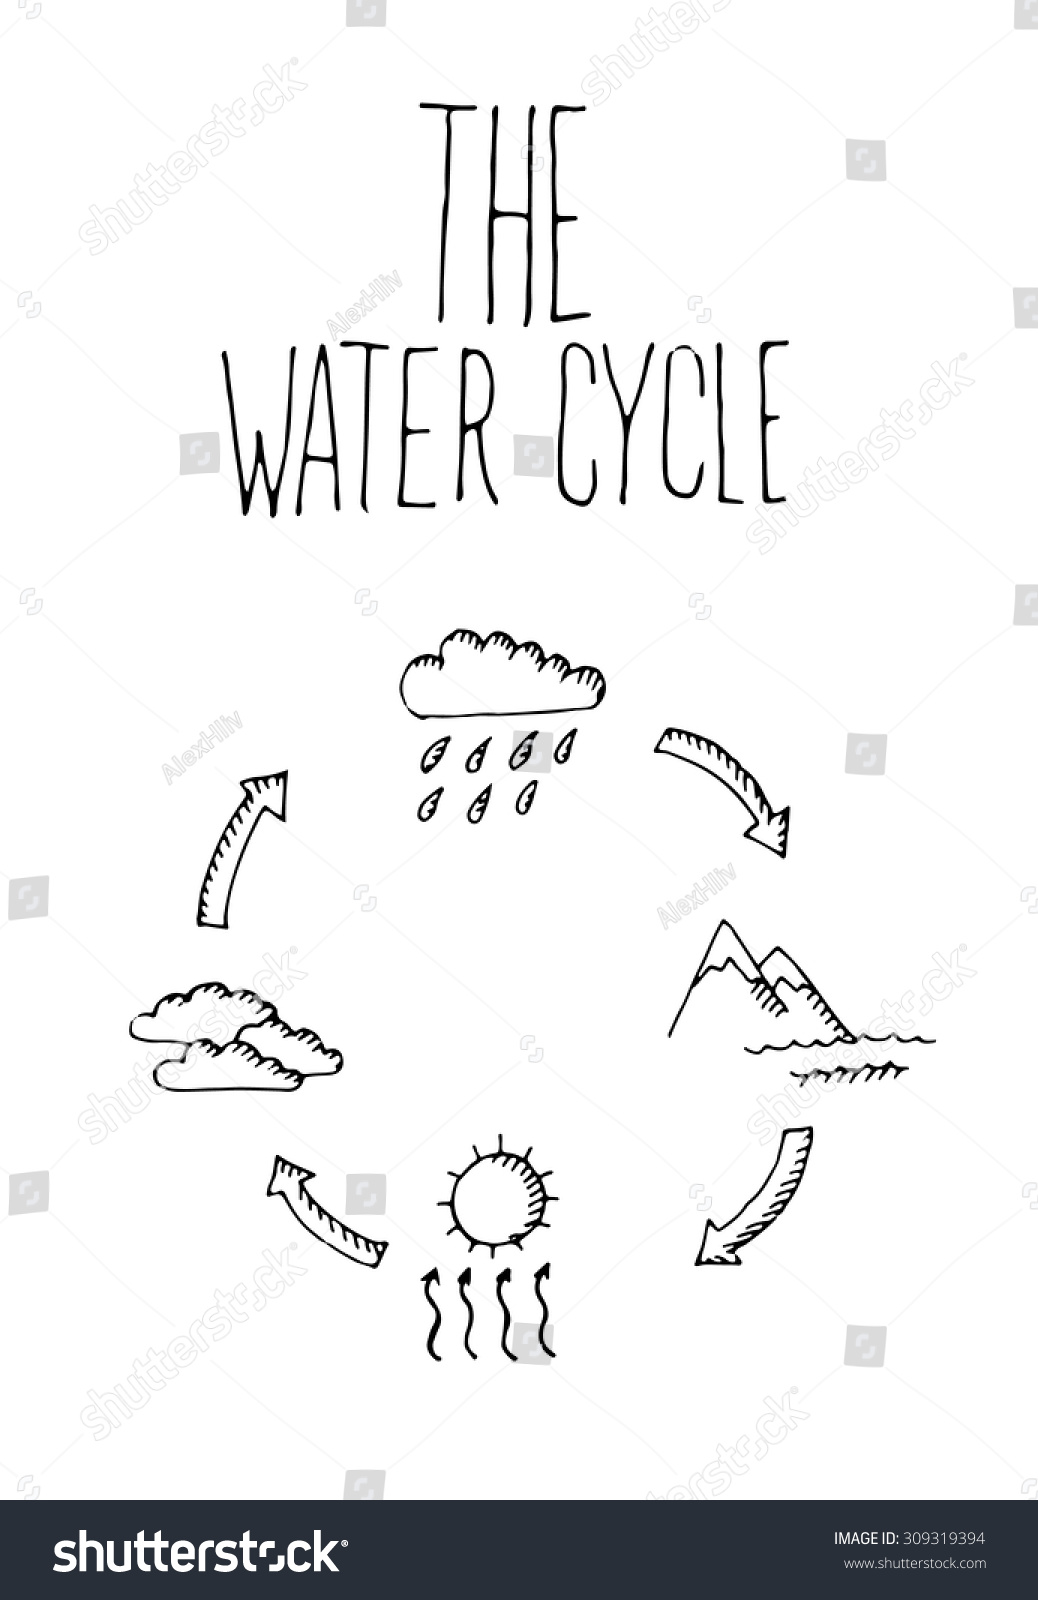 Hand drawn water cycle on white background vector illustration